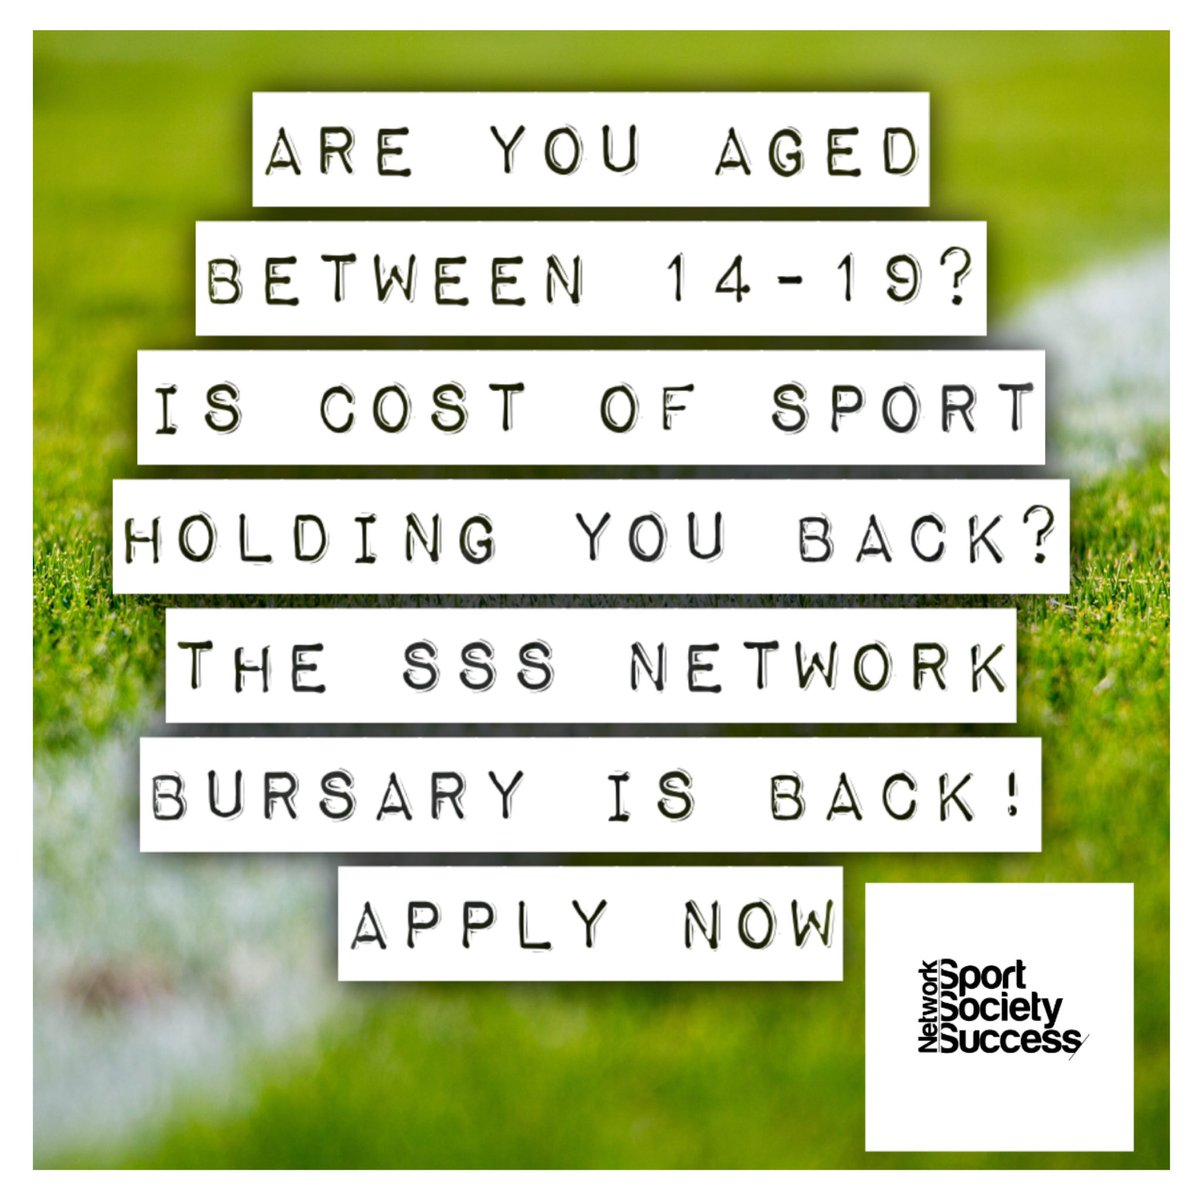 The time for applying is now! For more information head to https://t.co/3Fh61KzLrn for more information #bursary #sport #youthsports #sssnetwork #sportsocietysuccessnetwork #fightforgood #rt